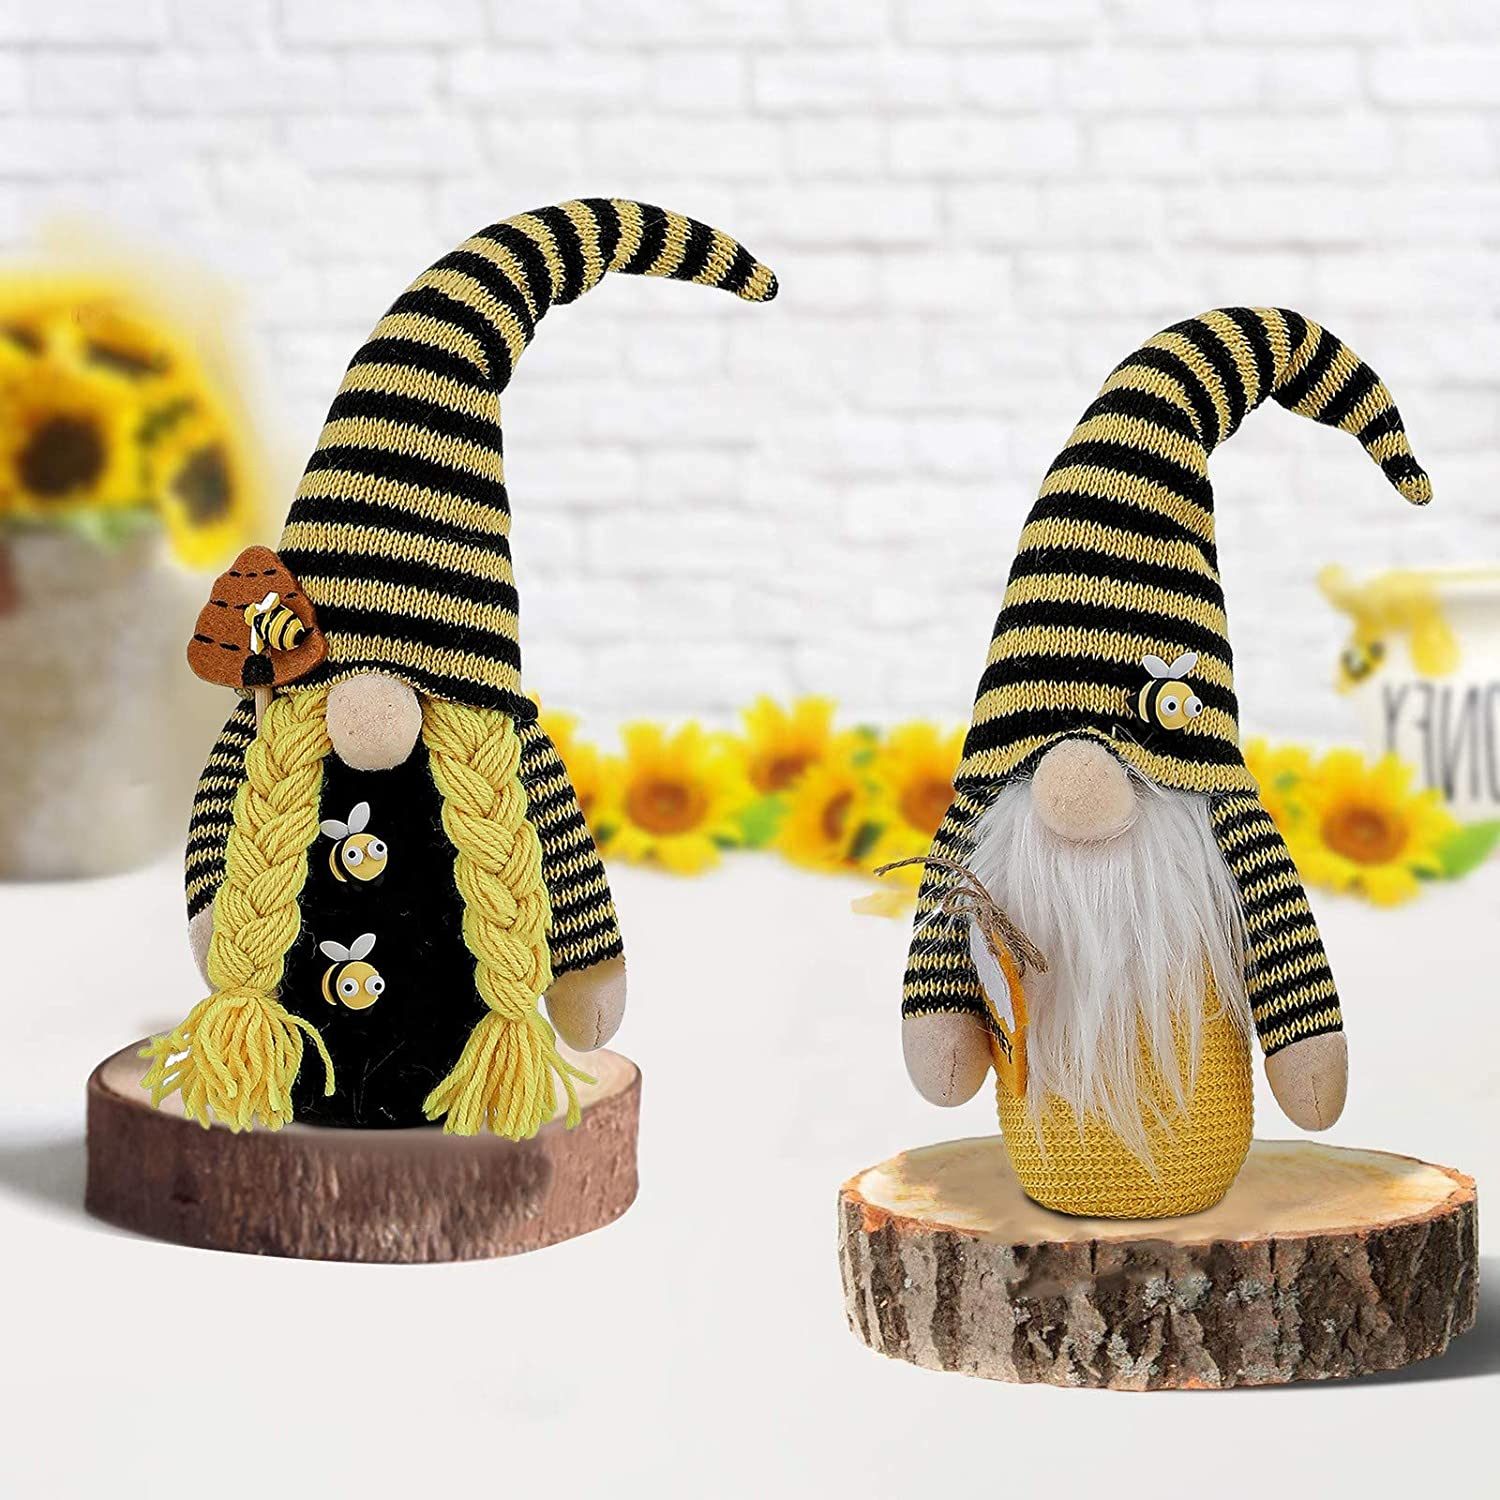 Malbaba Set of 2 Bee Gnome Farmhouse Decor Spring Gnome Modern Country Accents Summer Gnome Rustic Home Decor Bumble Bee Gnome Honey Bee Gnomes